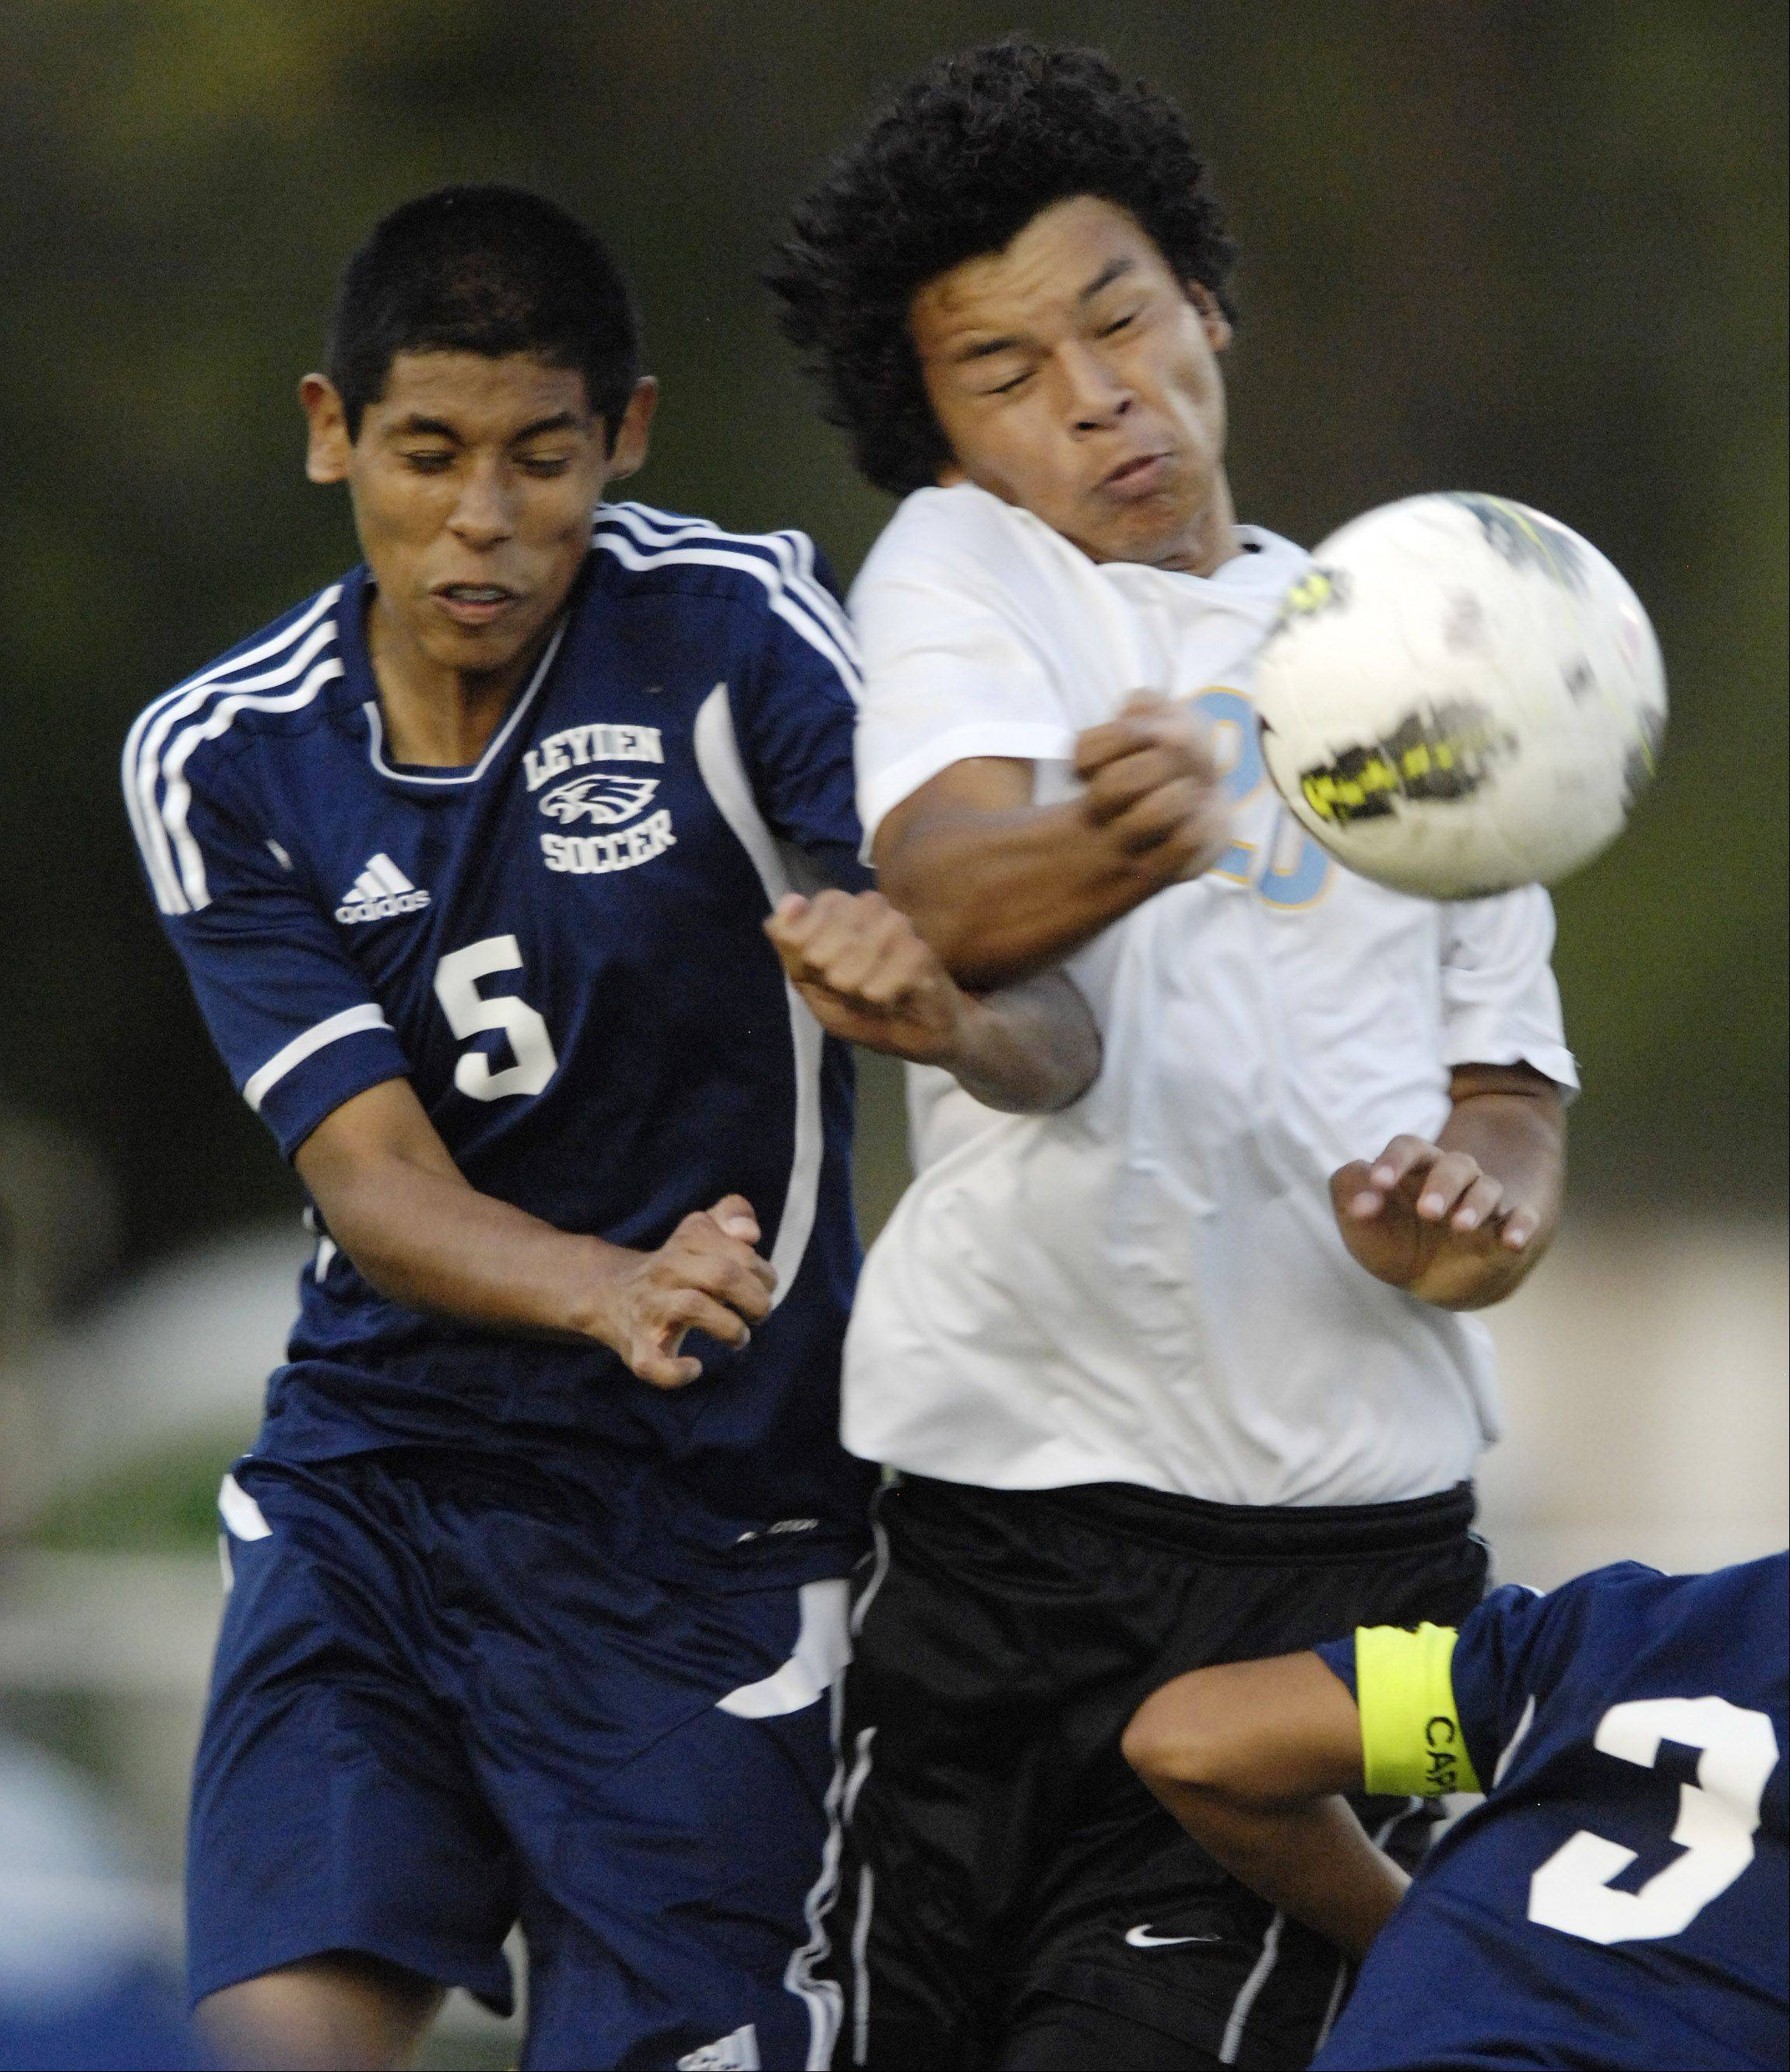 Leyden's Moises Merlos, left, and Maine Wests' Nelson Herrara leap to control the ball during Wednesday's soccer game.